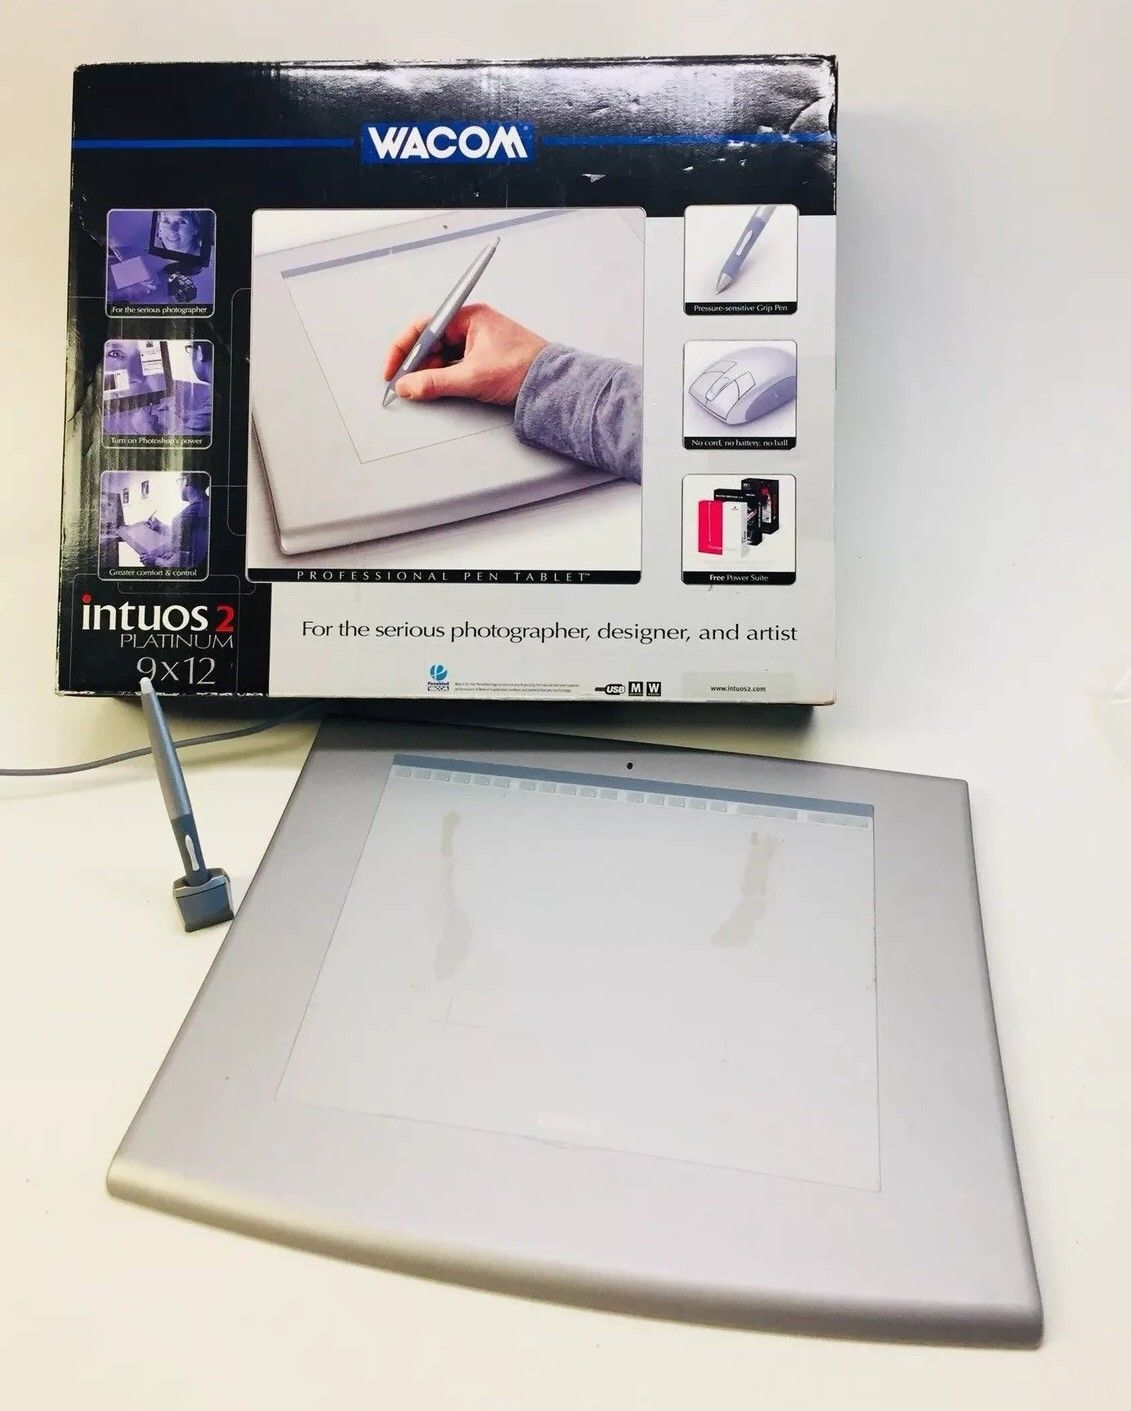 Wacom Mouse 1 Customer Review And 29 Listings Ctl 490 W0 Intuos Draw Fun Small White 2 Platinum 9x12 Usb Pen Tablet Set Used No Tested Works 3618